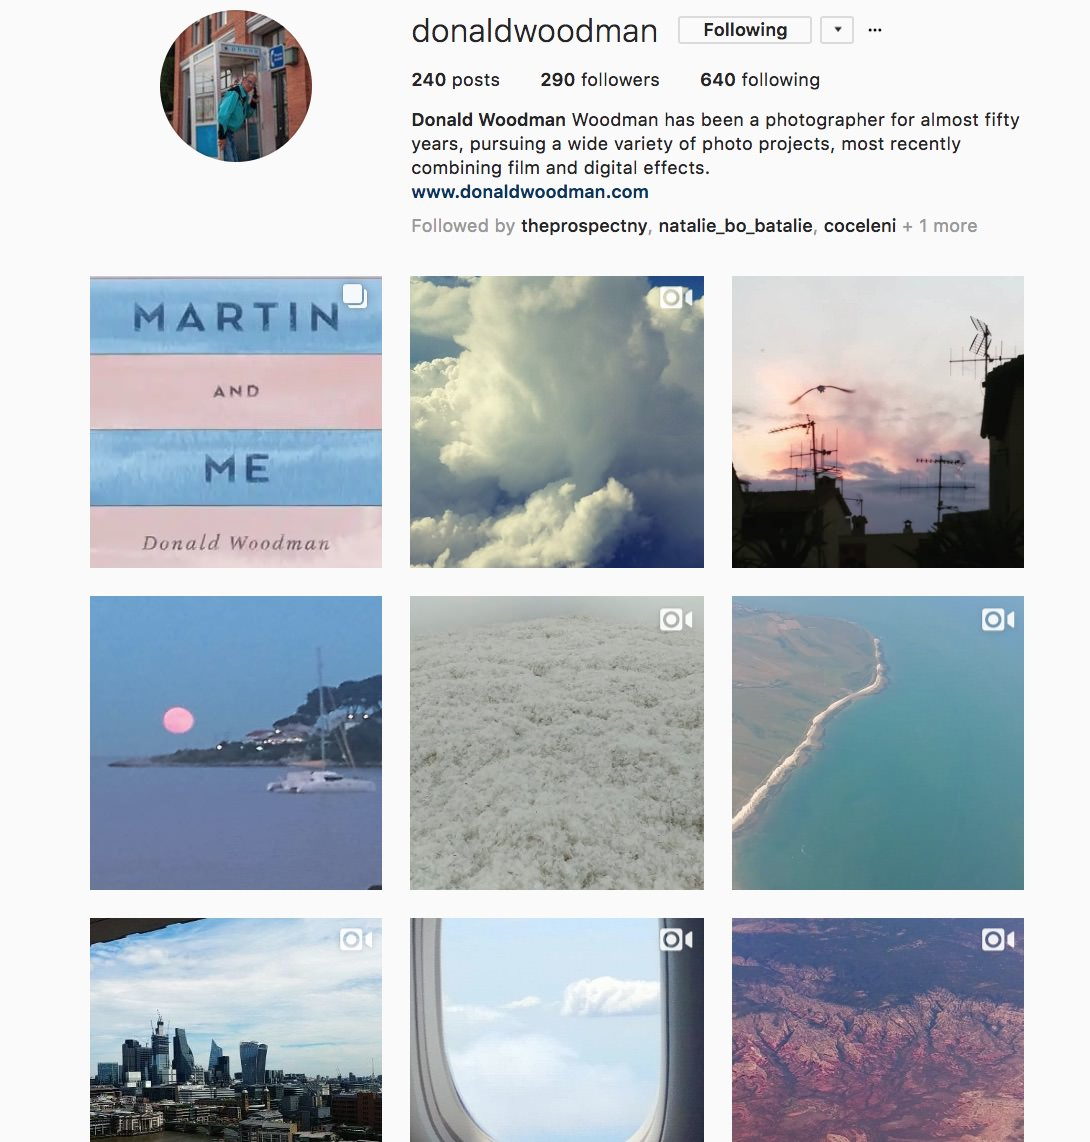 images?q=tbn:ANd9GcQh_l3eQ5xwiPy07kGEXjmjgmBKBRB7H2mRxCGhv1tFWg5c_mWT Ideas For Photography Names For Instagram @http://capturingmomentsphotography.net.info